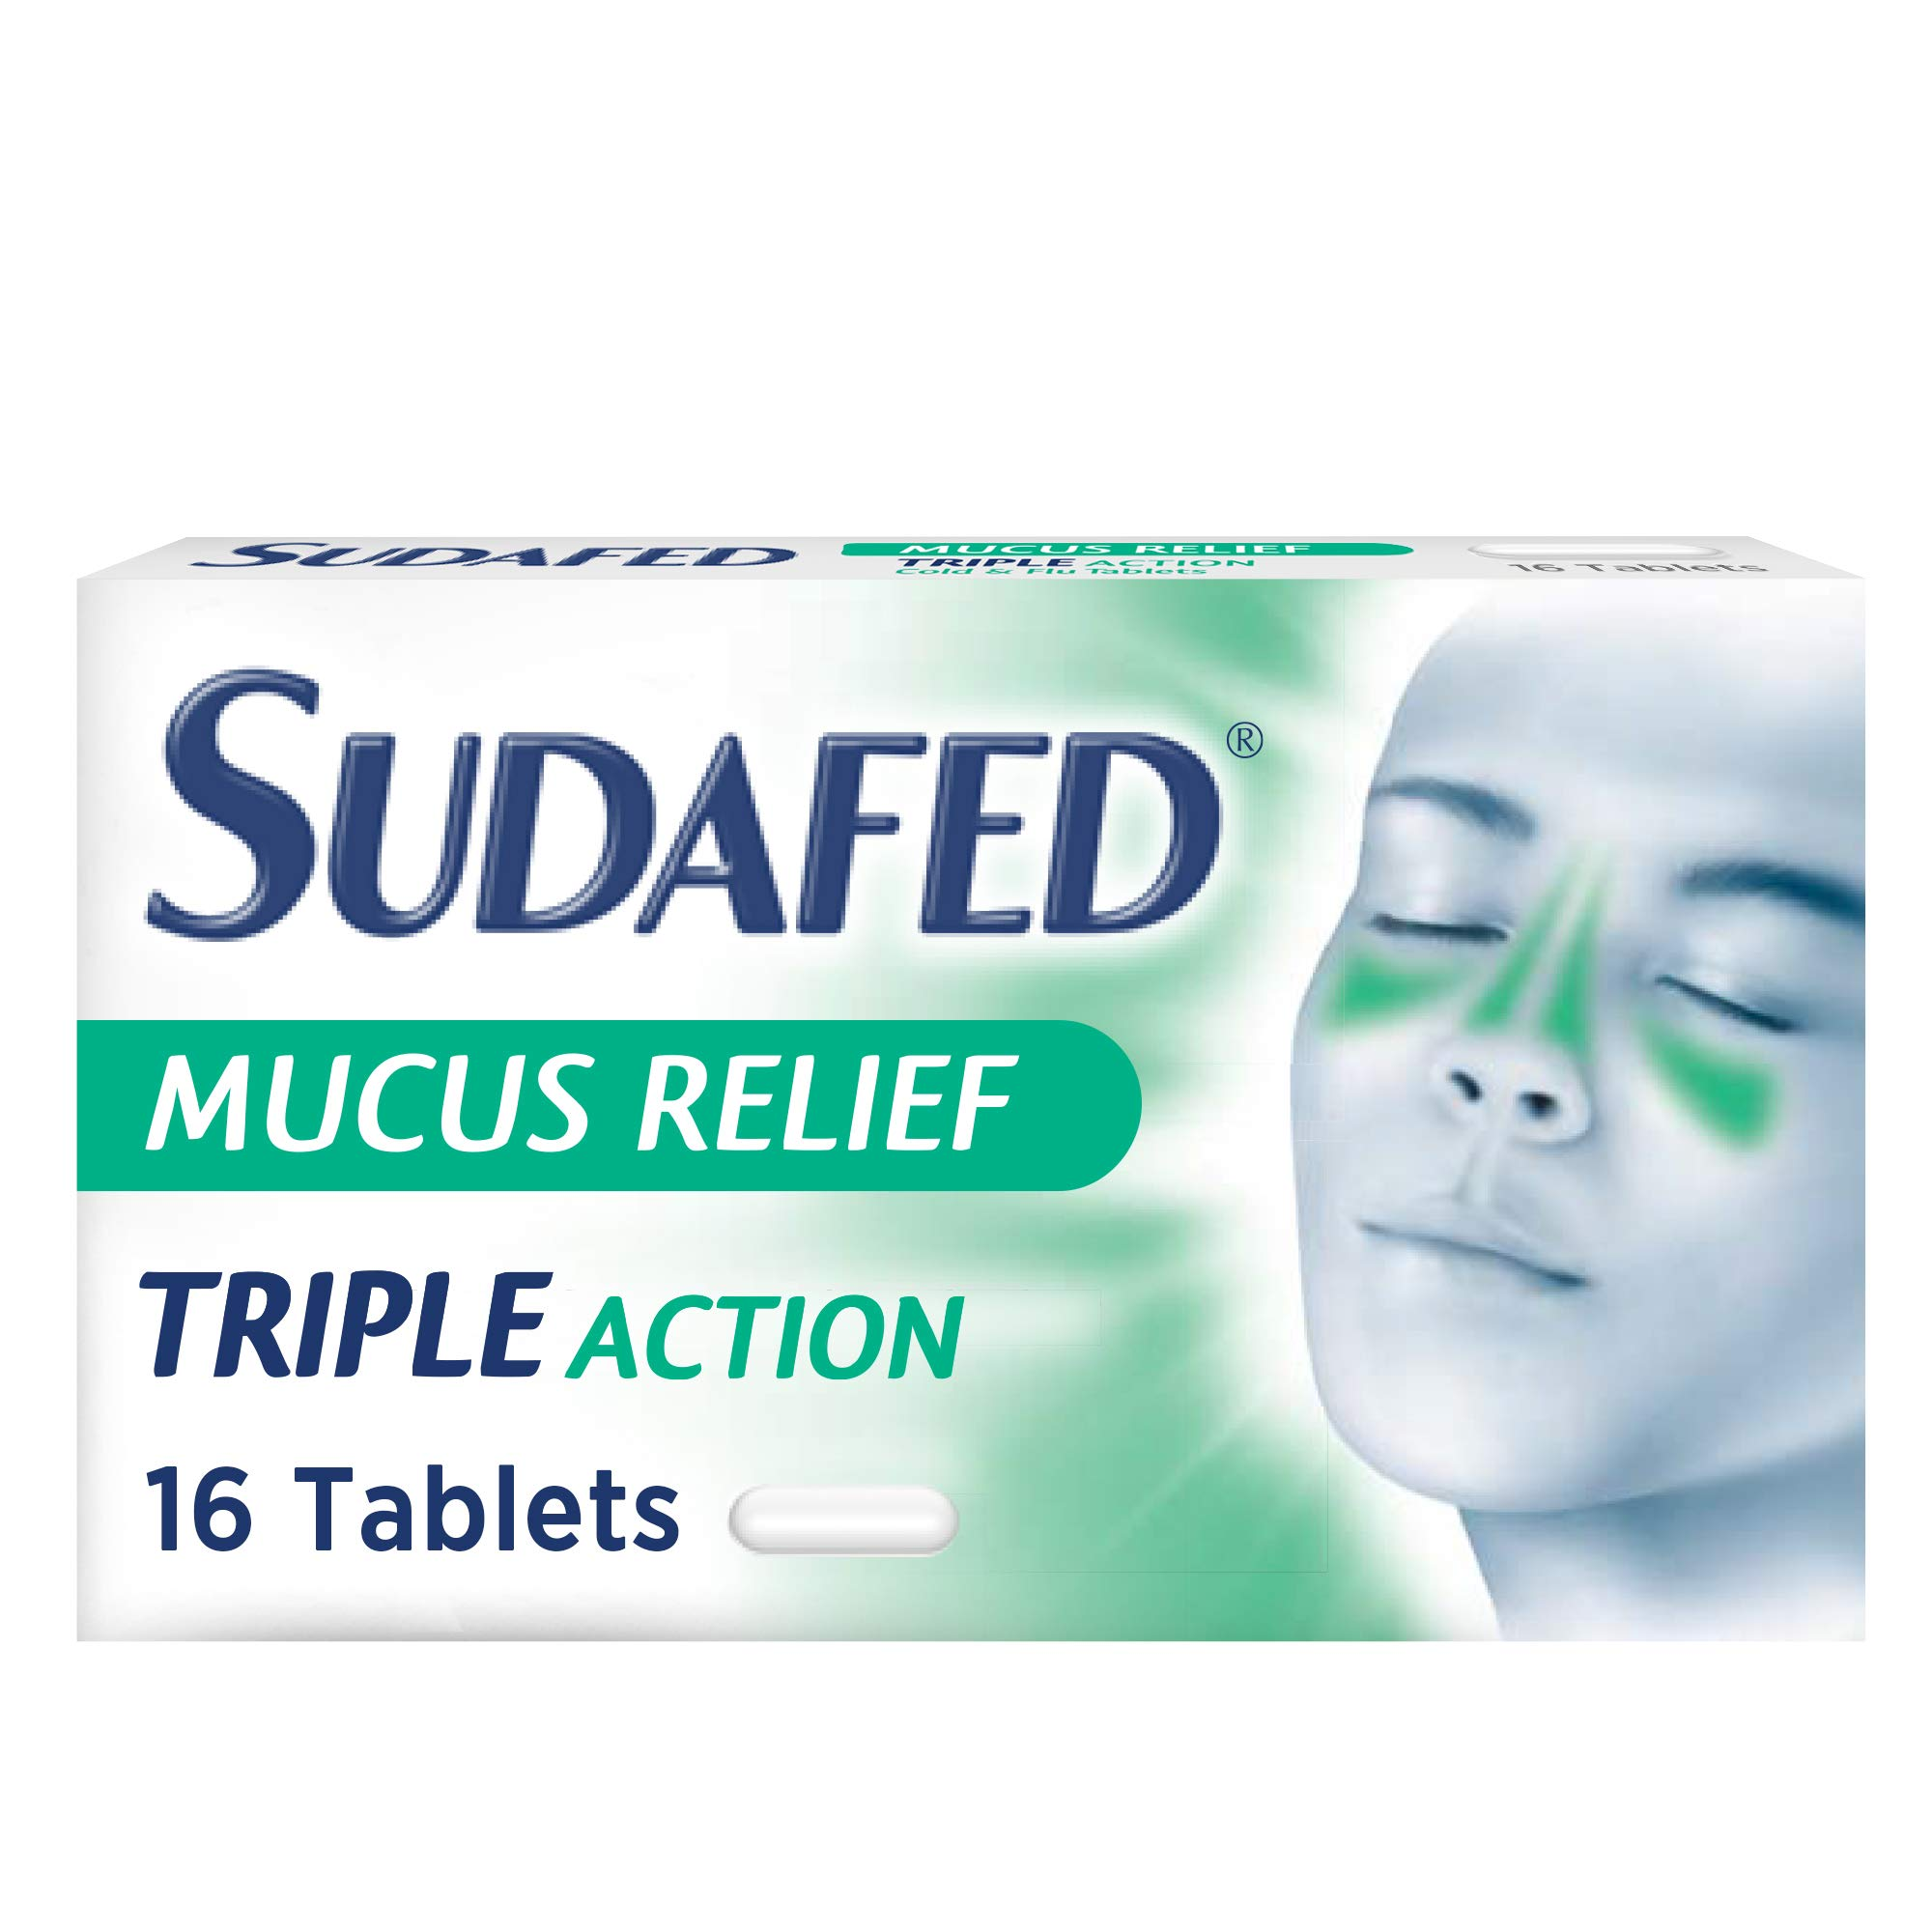 Sudafed Mucus Relief Triple Action Cold and Flu, Stop Cold Symptoms From Day 1, Pack of 16